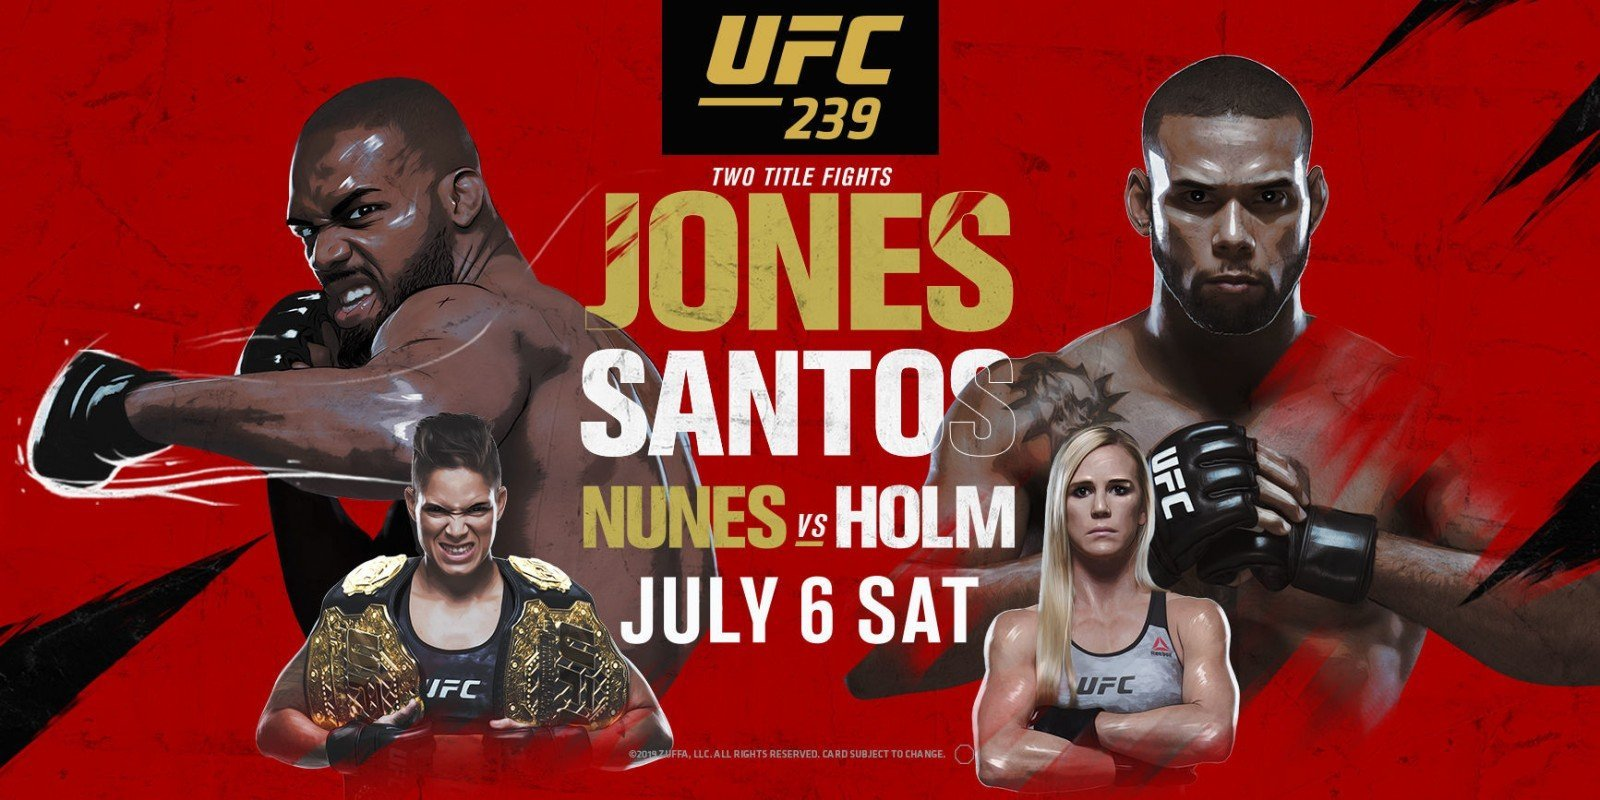 Octogon n°295 – UFC 239 « Jones/Santos »